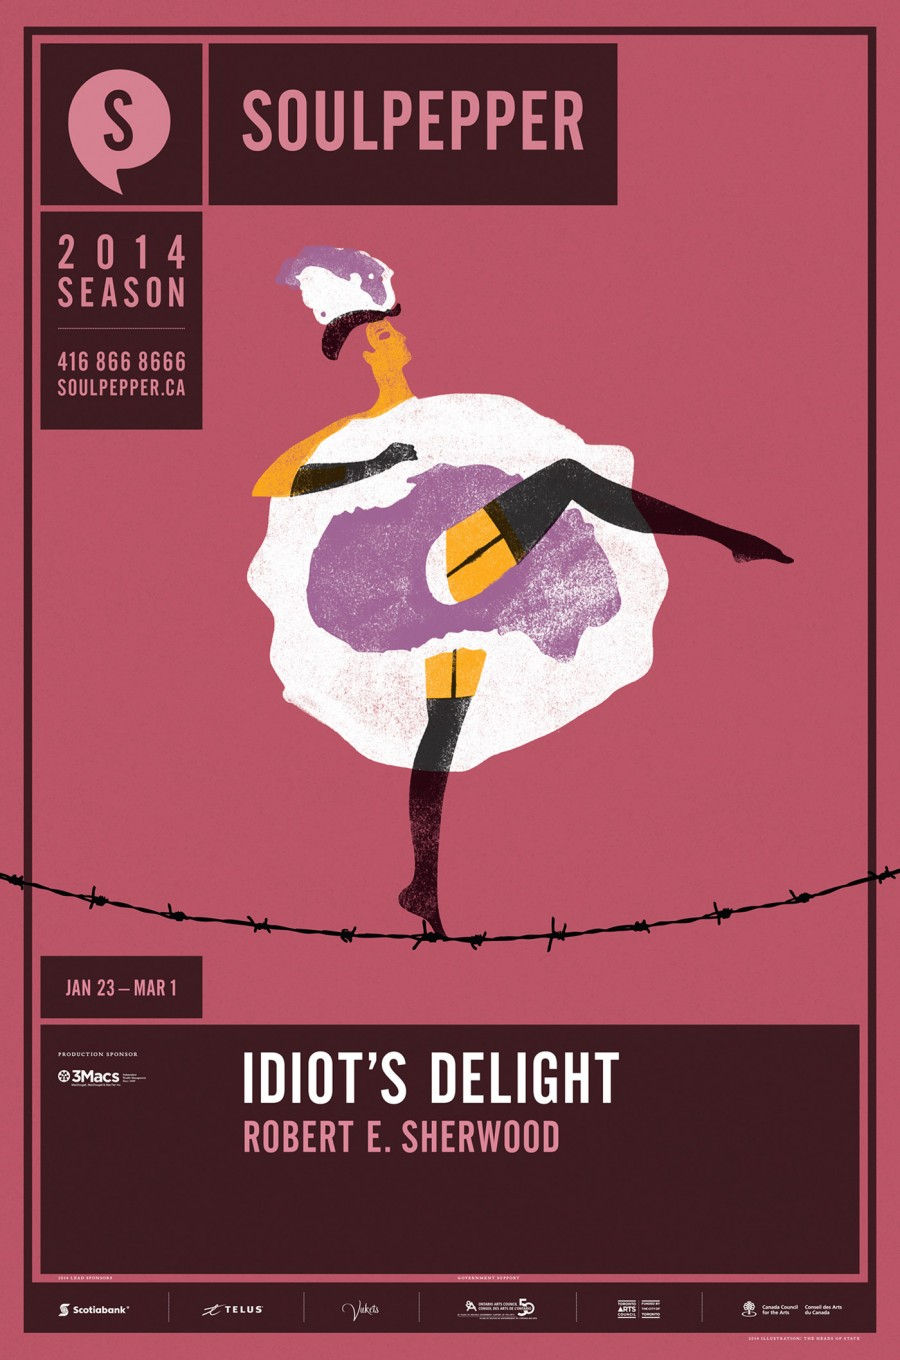 Idiot's Delight - Soulpepper Theatre - 2014 Season Poster Series - The Heads of State